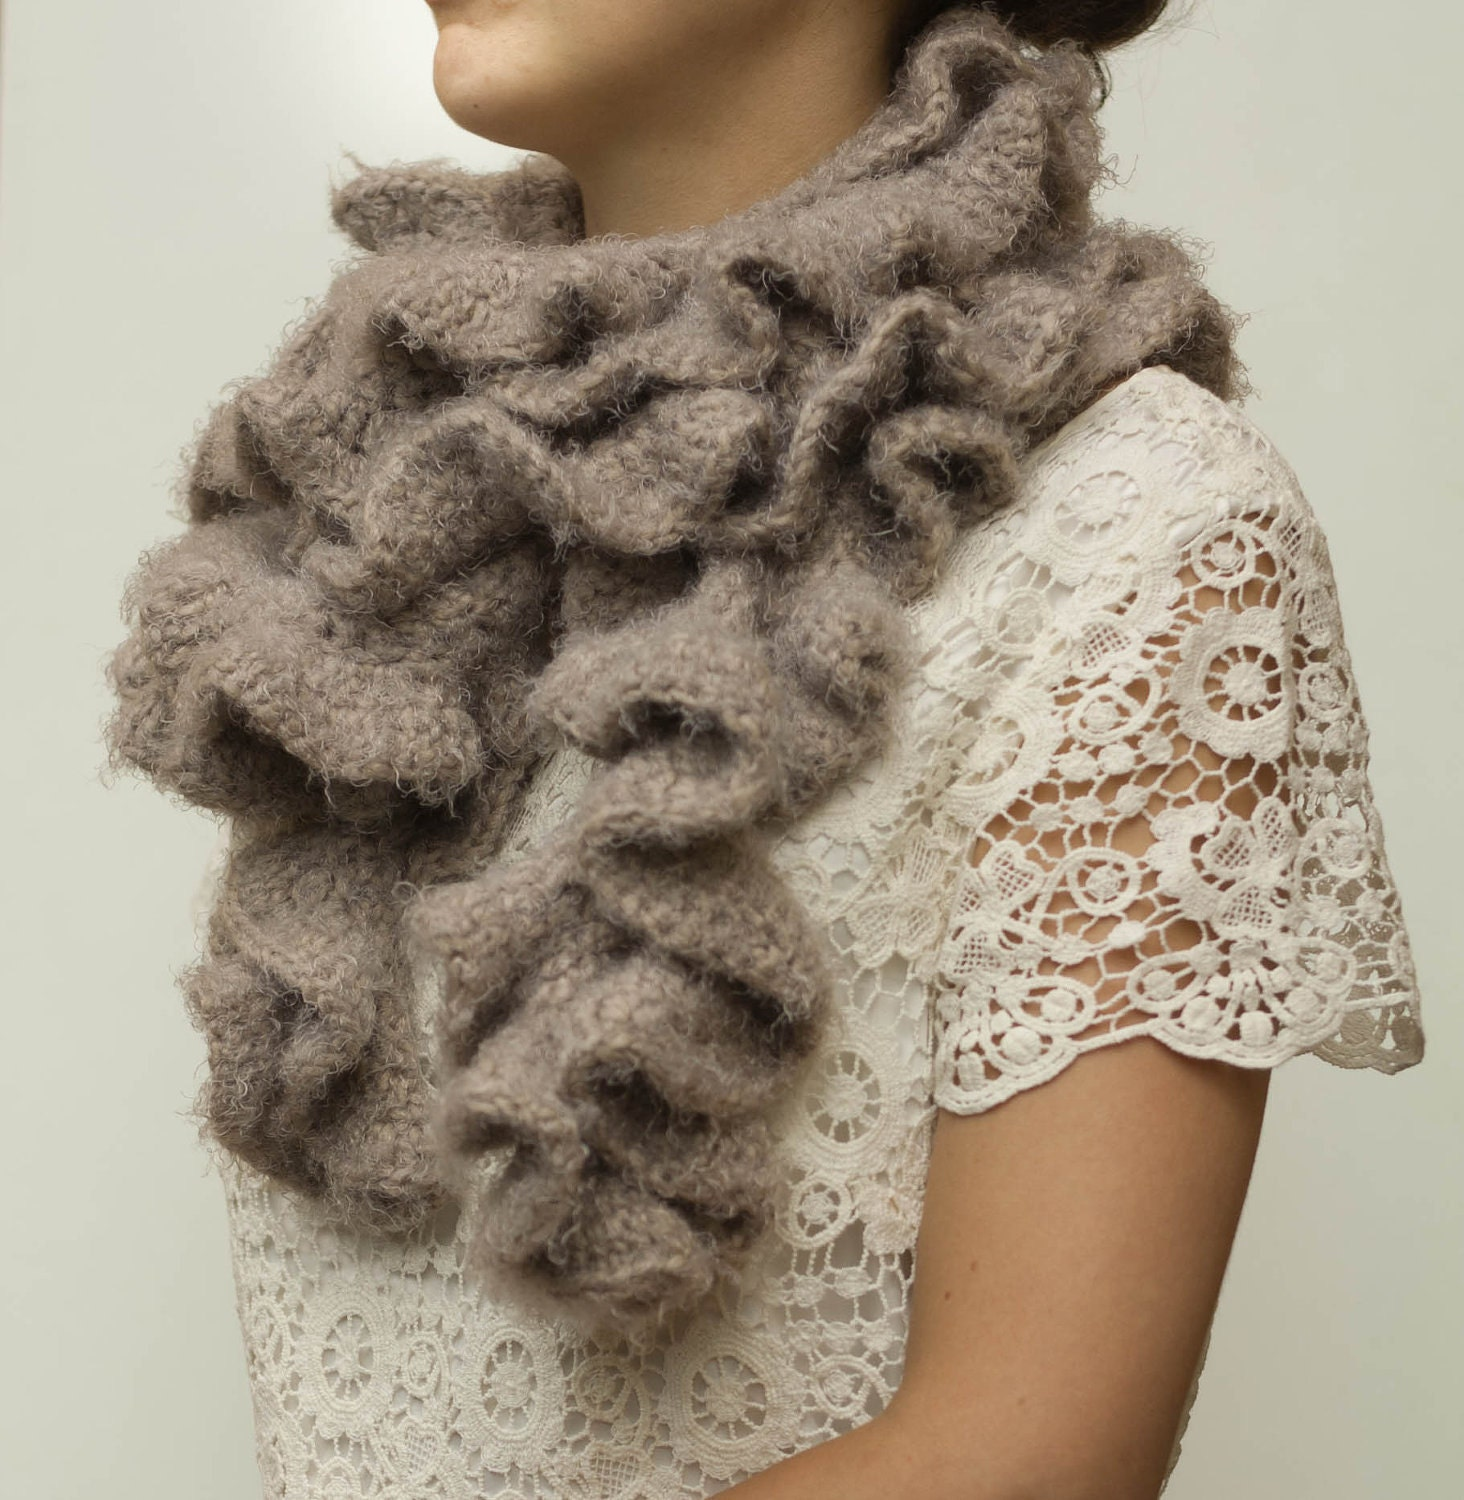 PDF CROCHET PATTERN Scarf Stormy Chocolate by WhisperTwister Neck Scarves Crochet Patterns